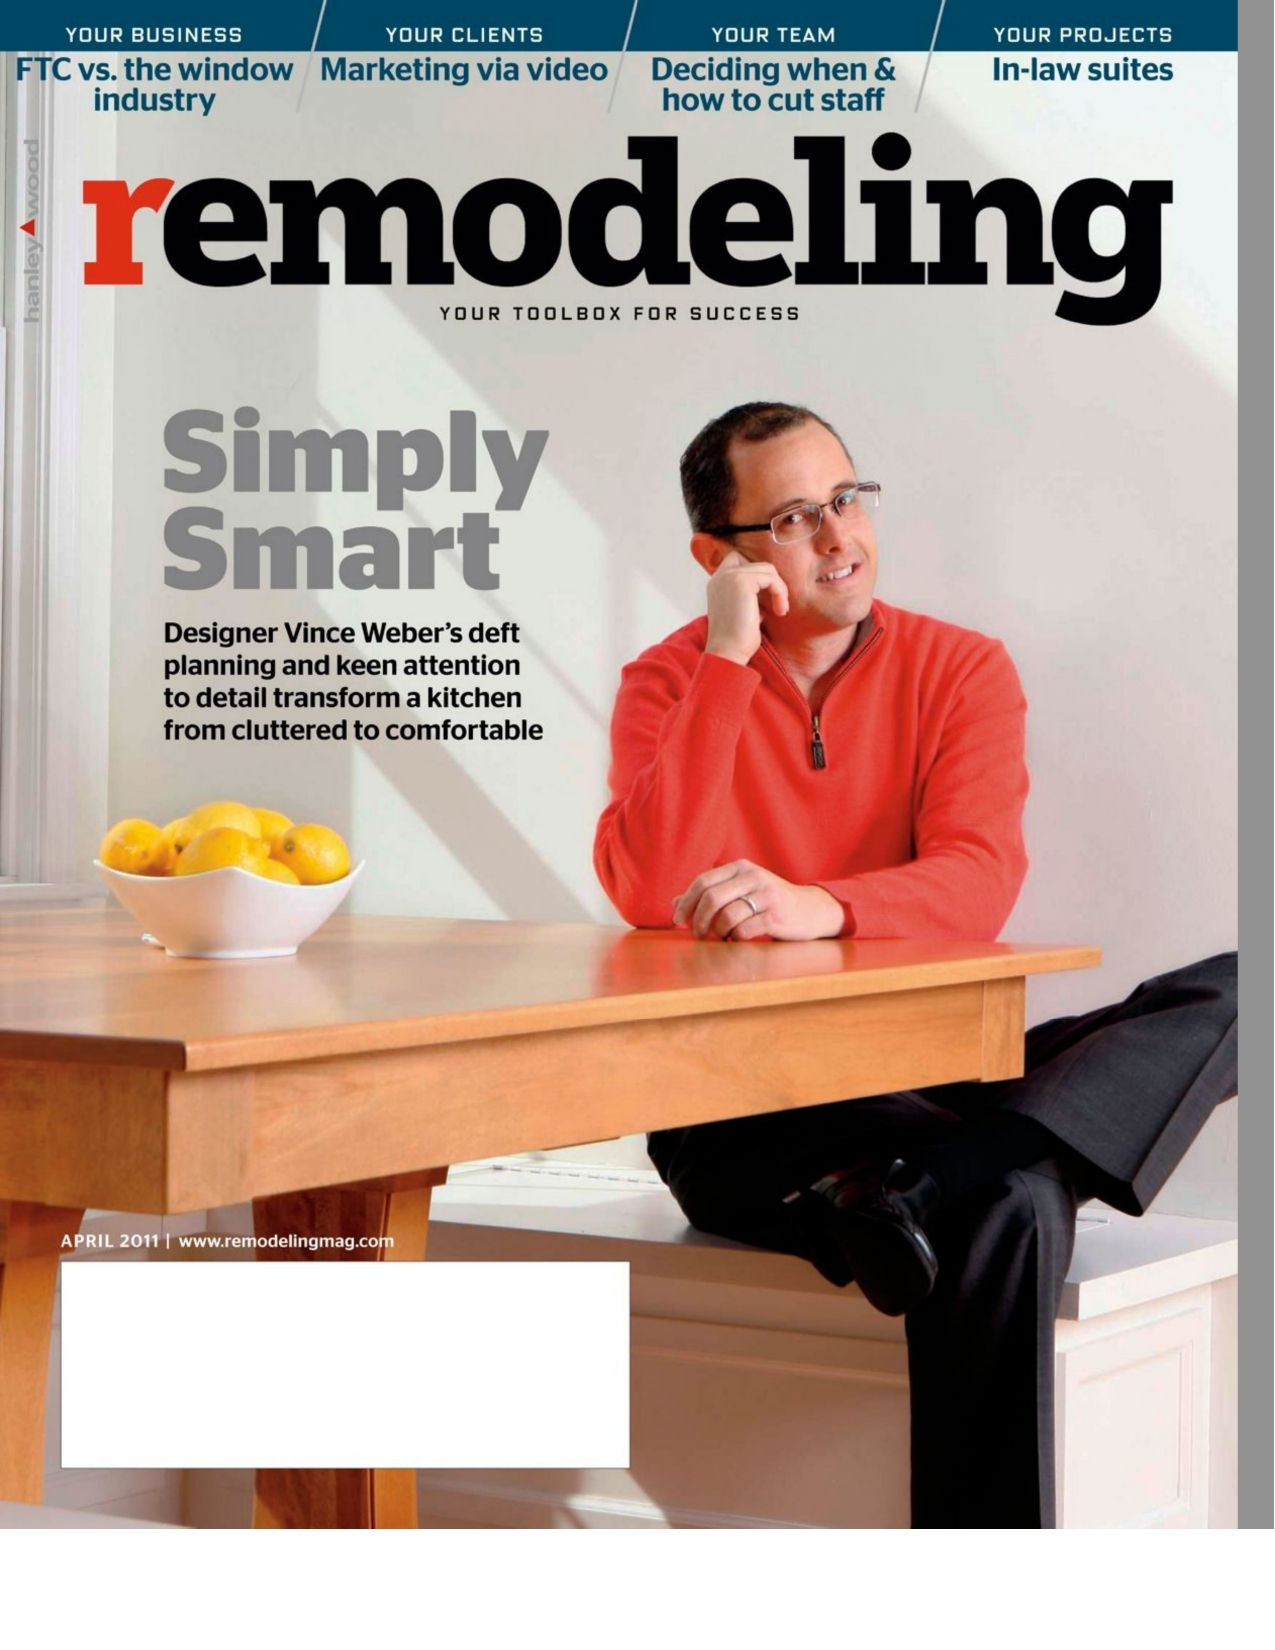 april 2011 remodeling magazine digital edition features simply smart kitchen remodel designs and details - Kitchen Remodeling Magazine